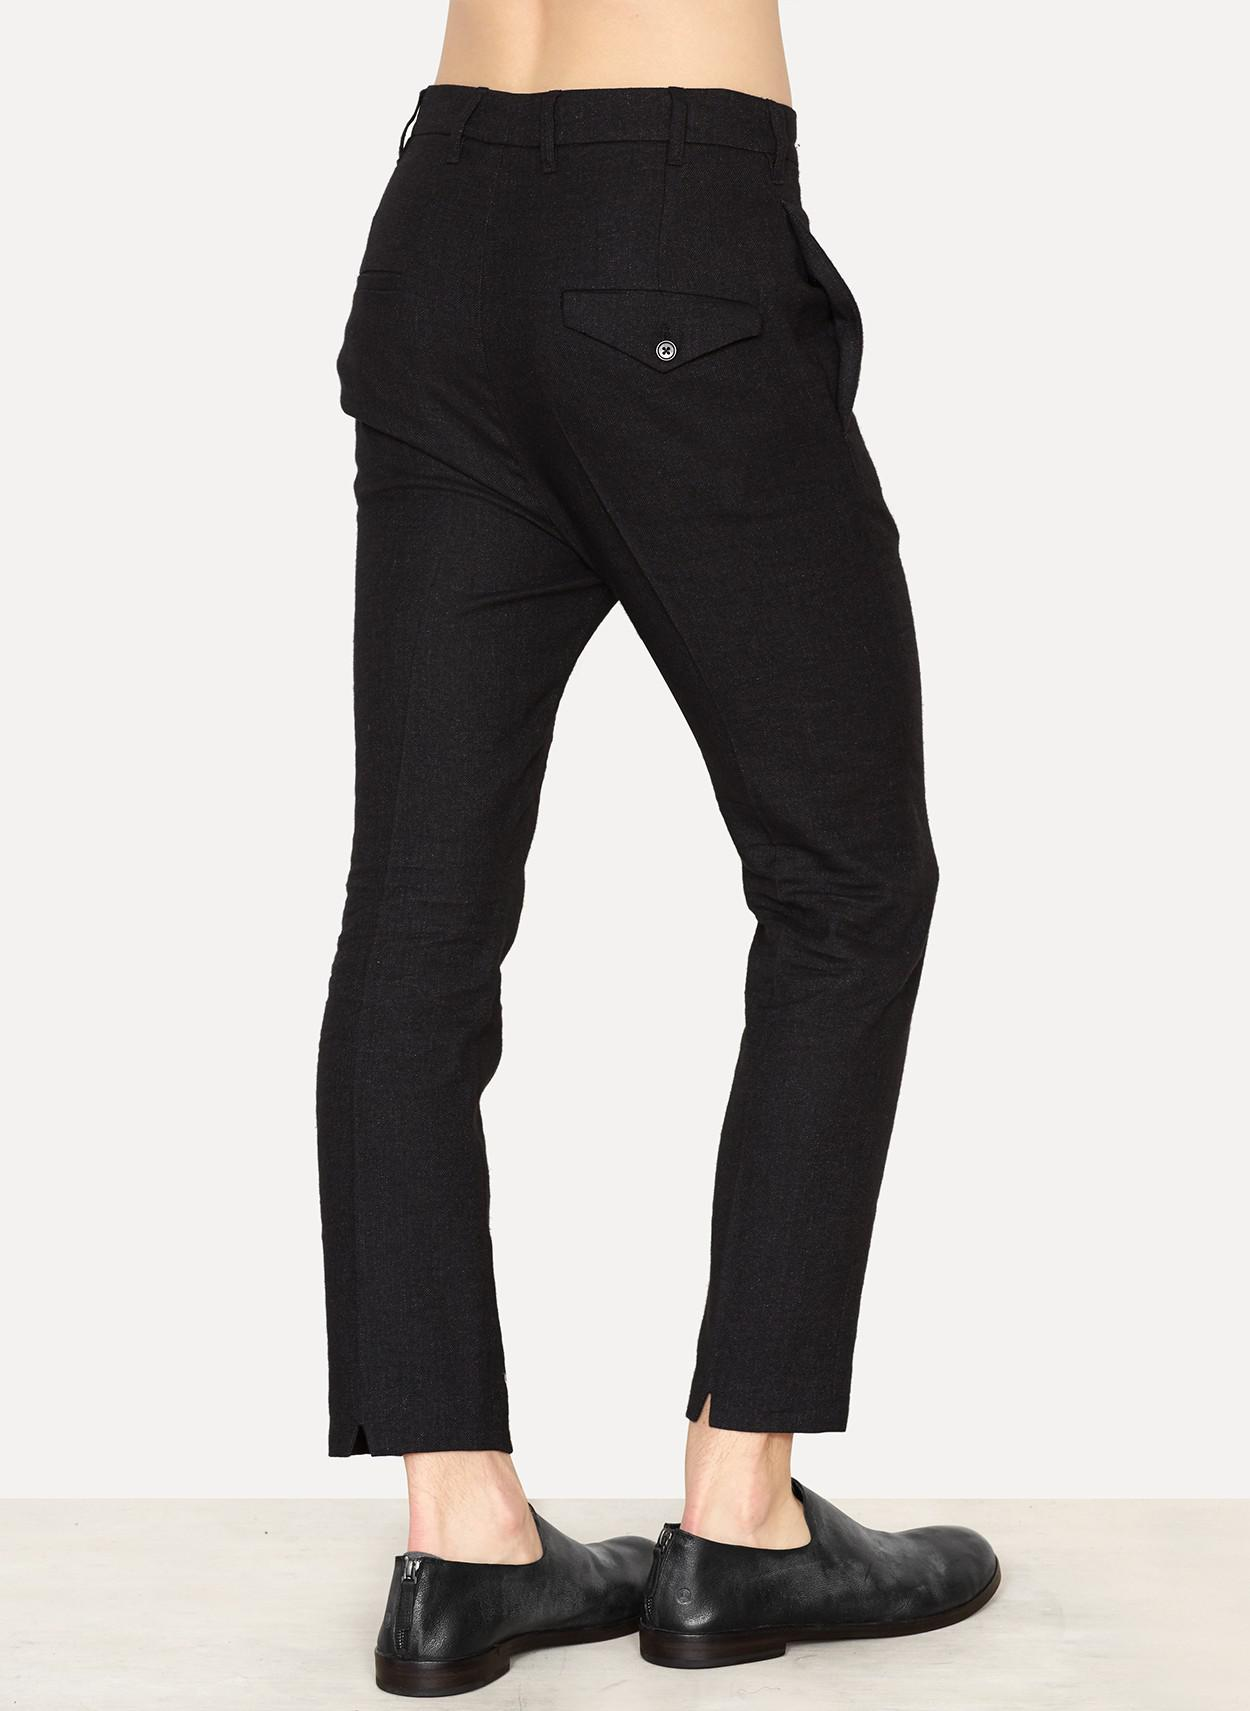 Official Site Cheap Online Grey Outlet Store Online Ann Demeulemeester high waist trousers - Black O6UgBdRQ9m